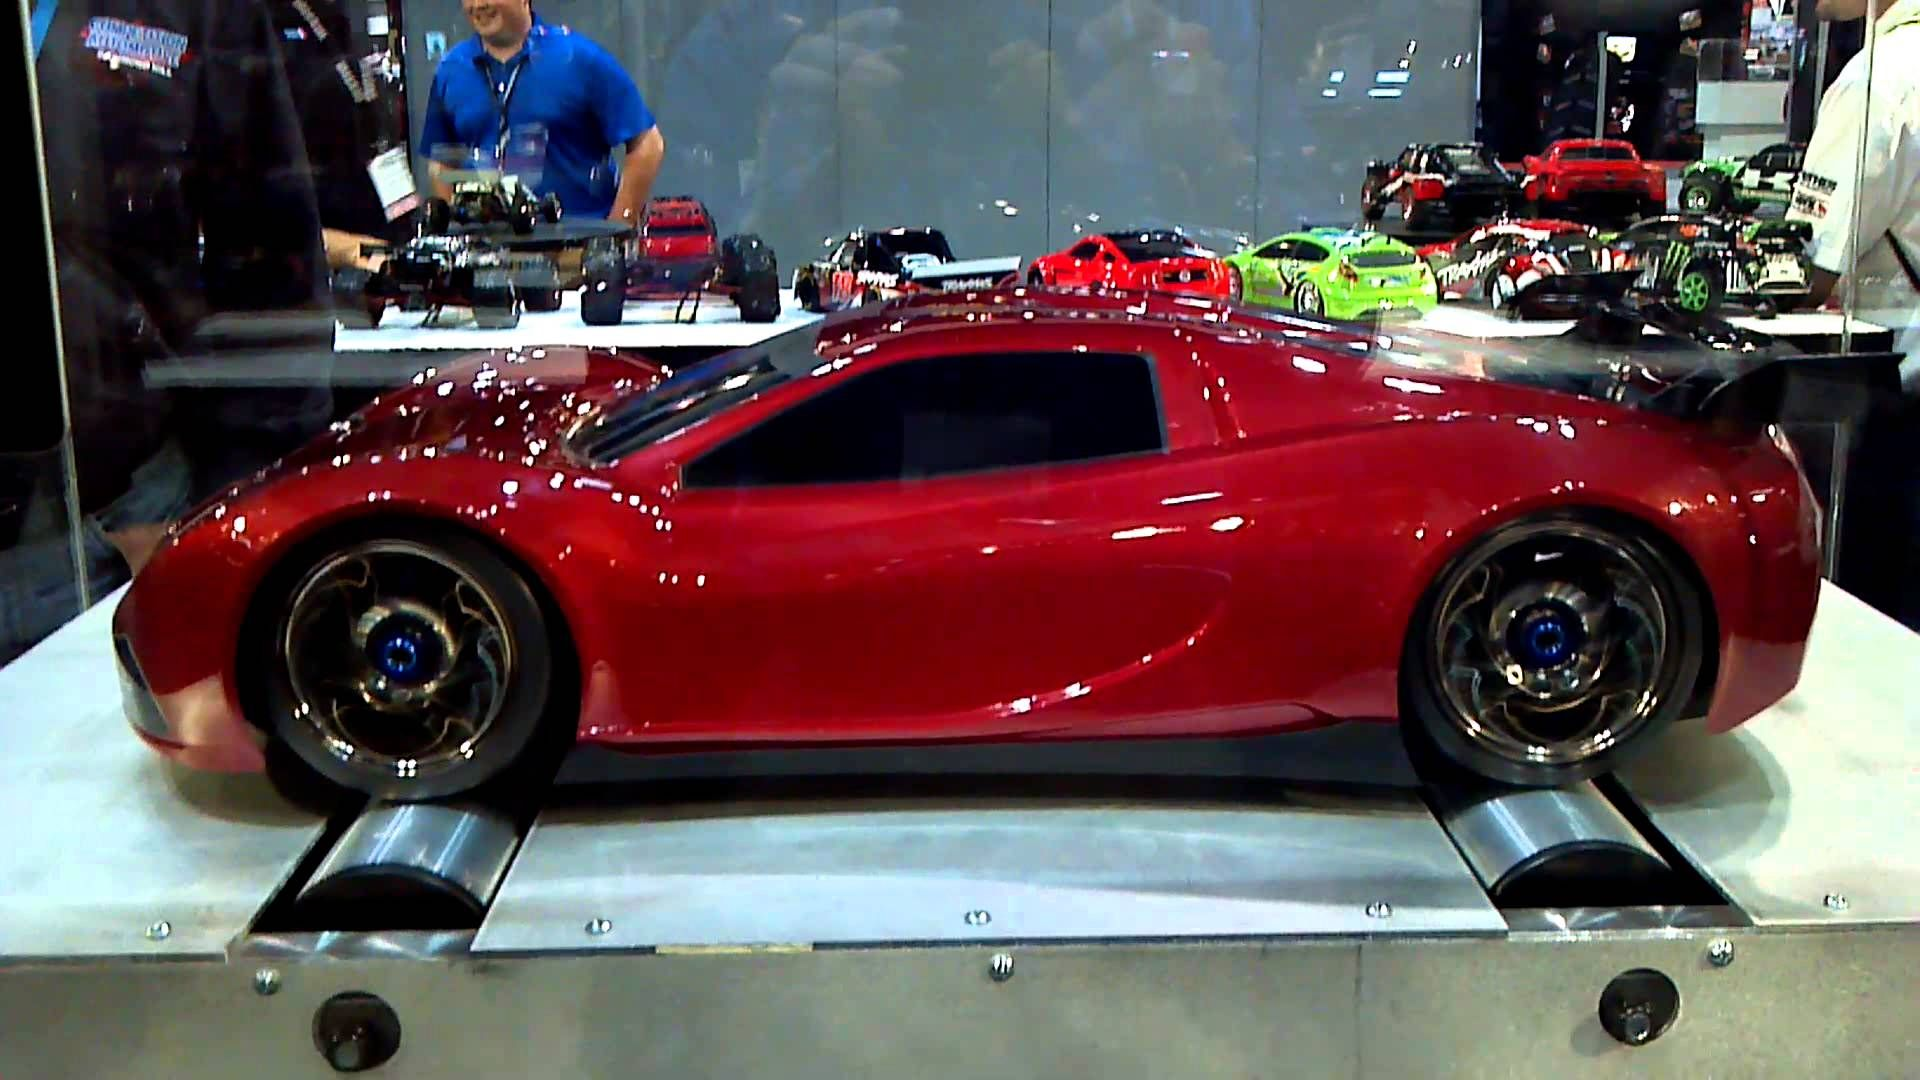 Traxxas Xo 1 100mph Super Car Hd Ready To Race Dyno This Looks Awesome I Want One But I Will Never Have One Just No Where To Run Car Hd Super Cars Traxxas